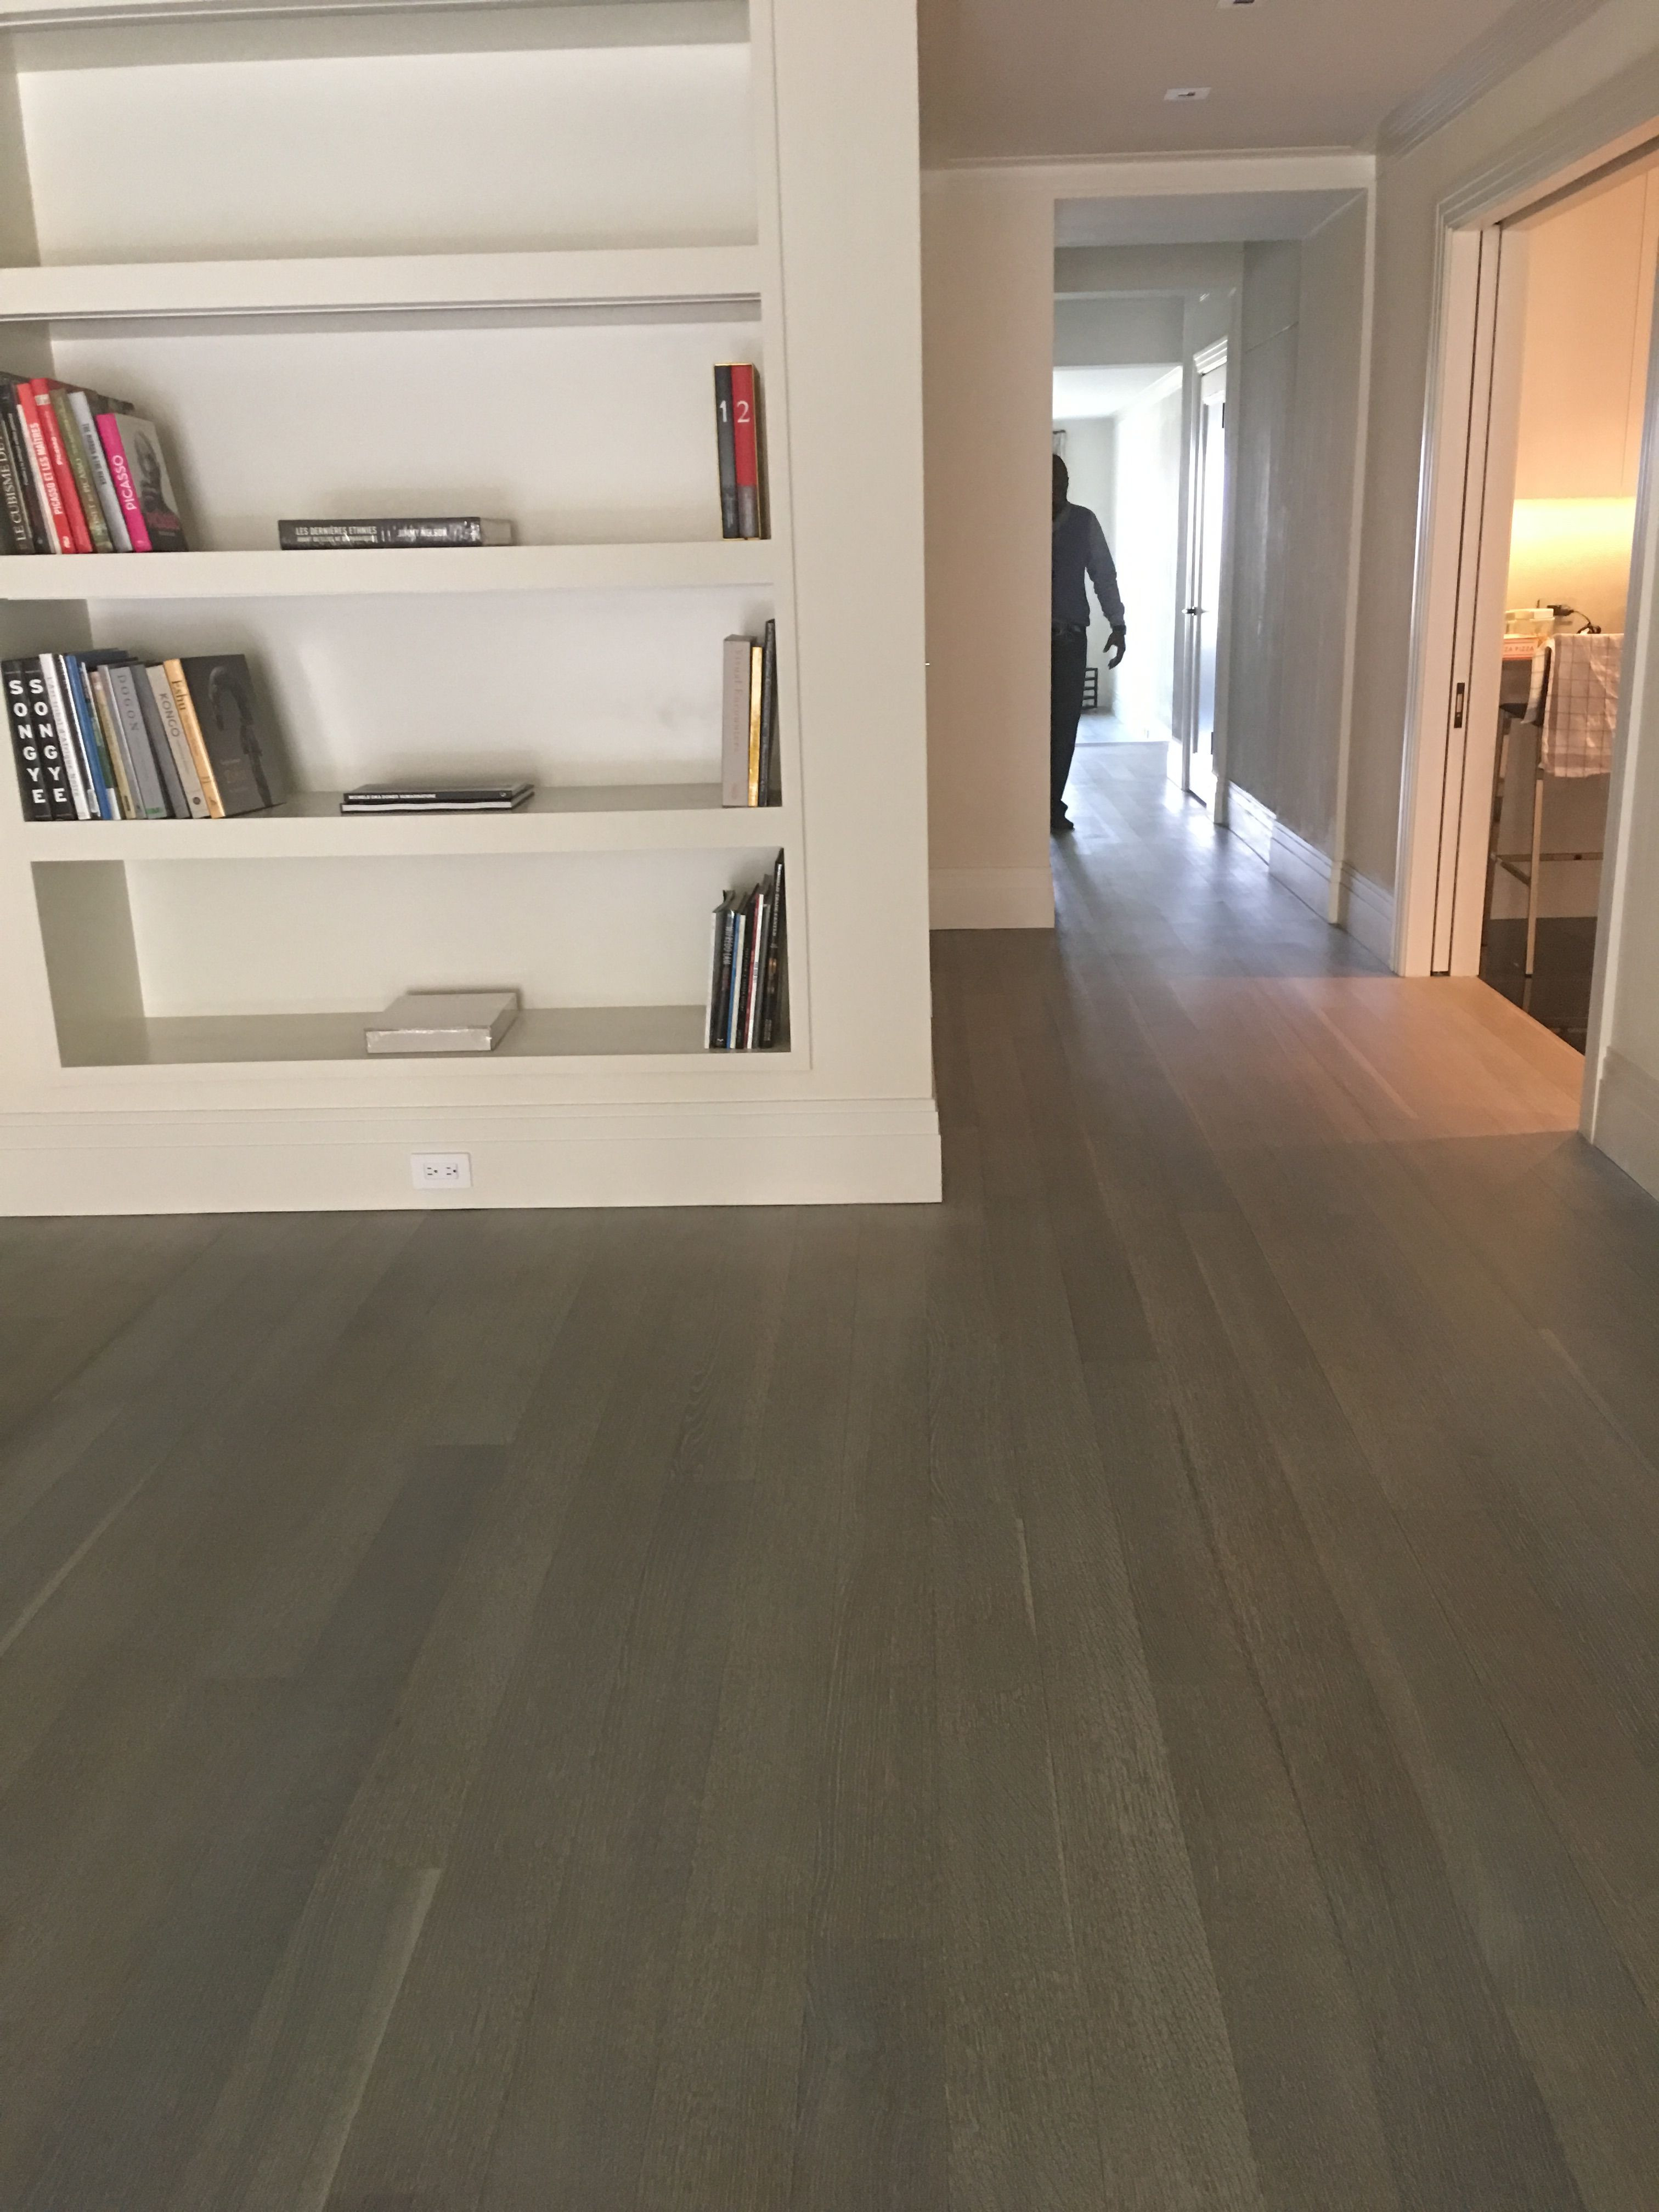 21 attractive How to Install tongue and Groove Hardwood Flooring 2021 free download how to install tongue and groove hardwood flooring of there are many different types of hardwood flooring that you can intended for there are many different types of hardwood flooring that y